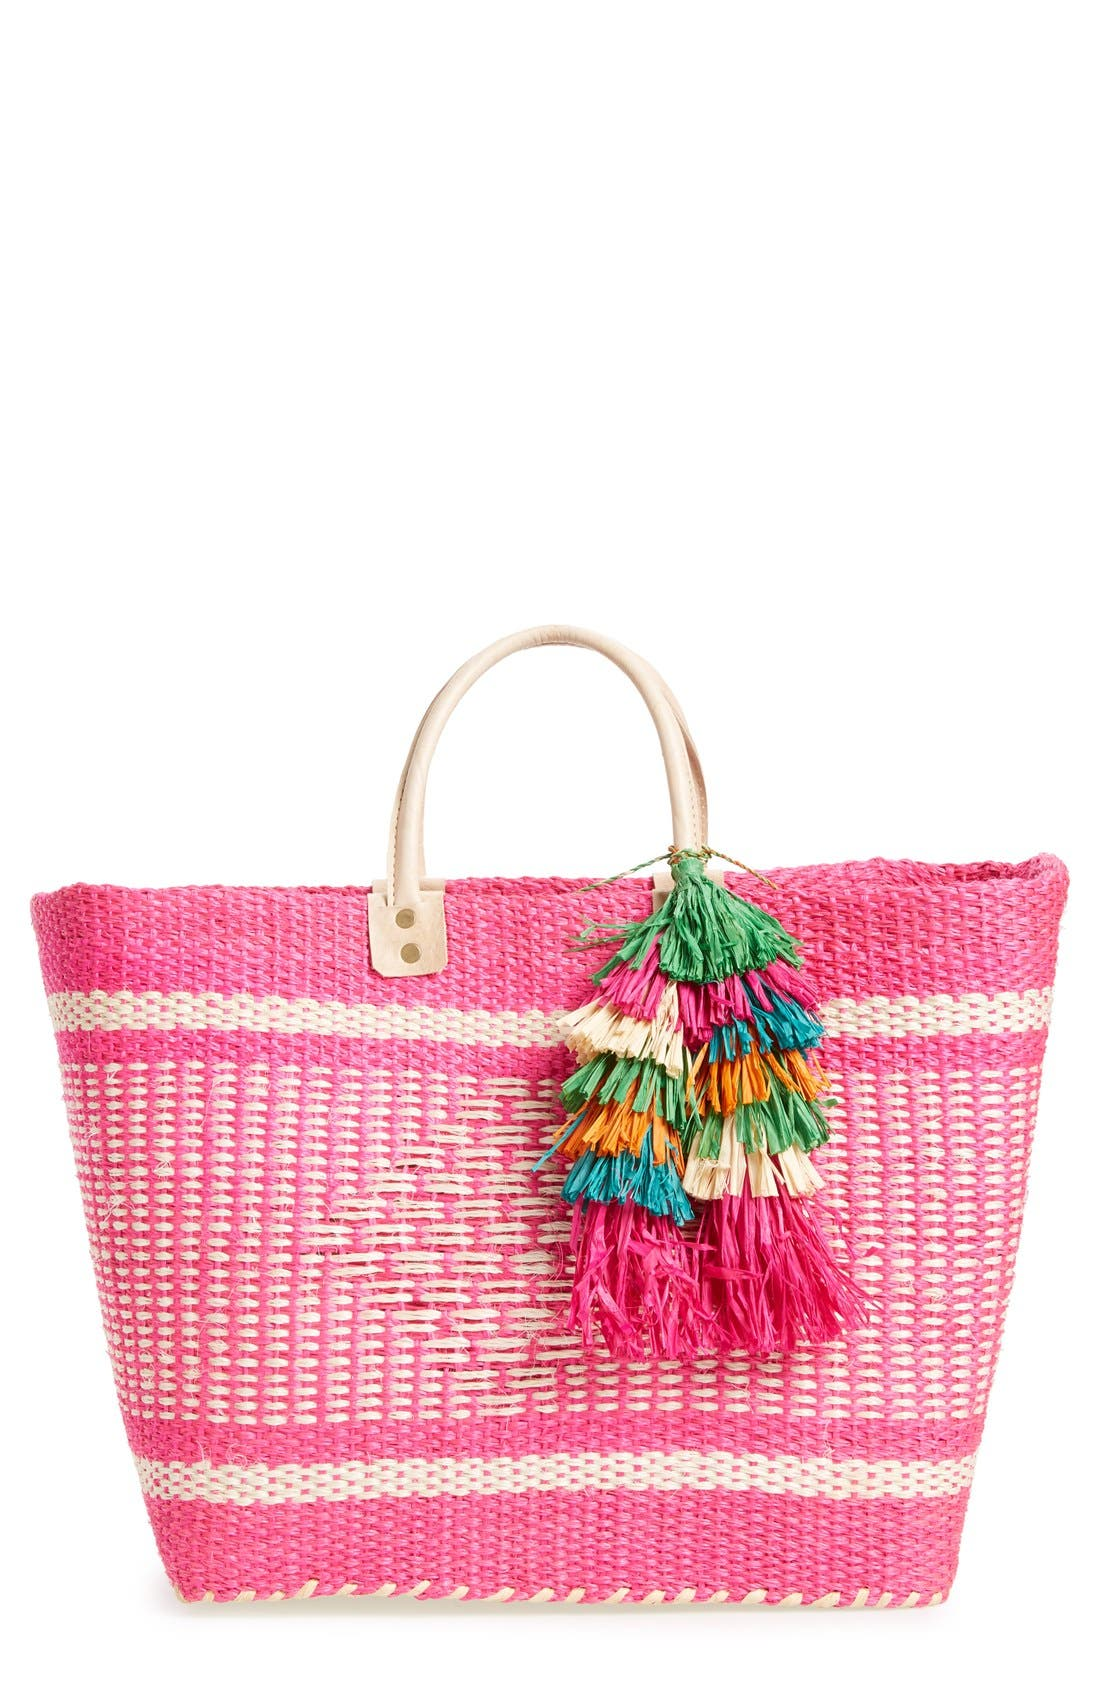 Main Image - Mar y Sol 'Ibiza' Woven Tote with Tassel Charms